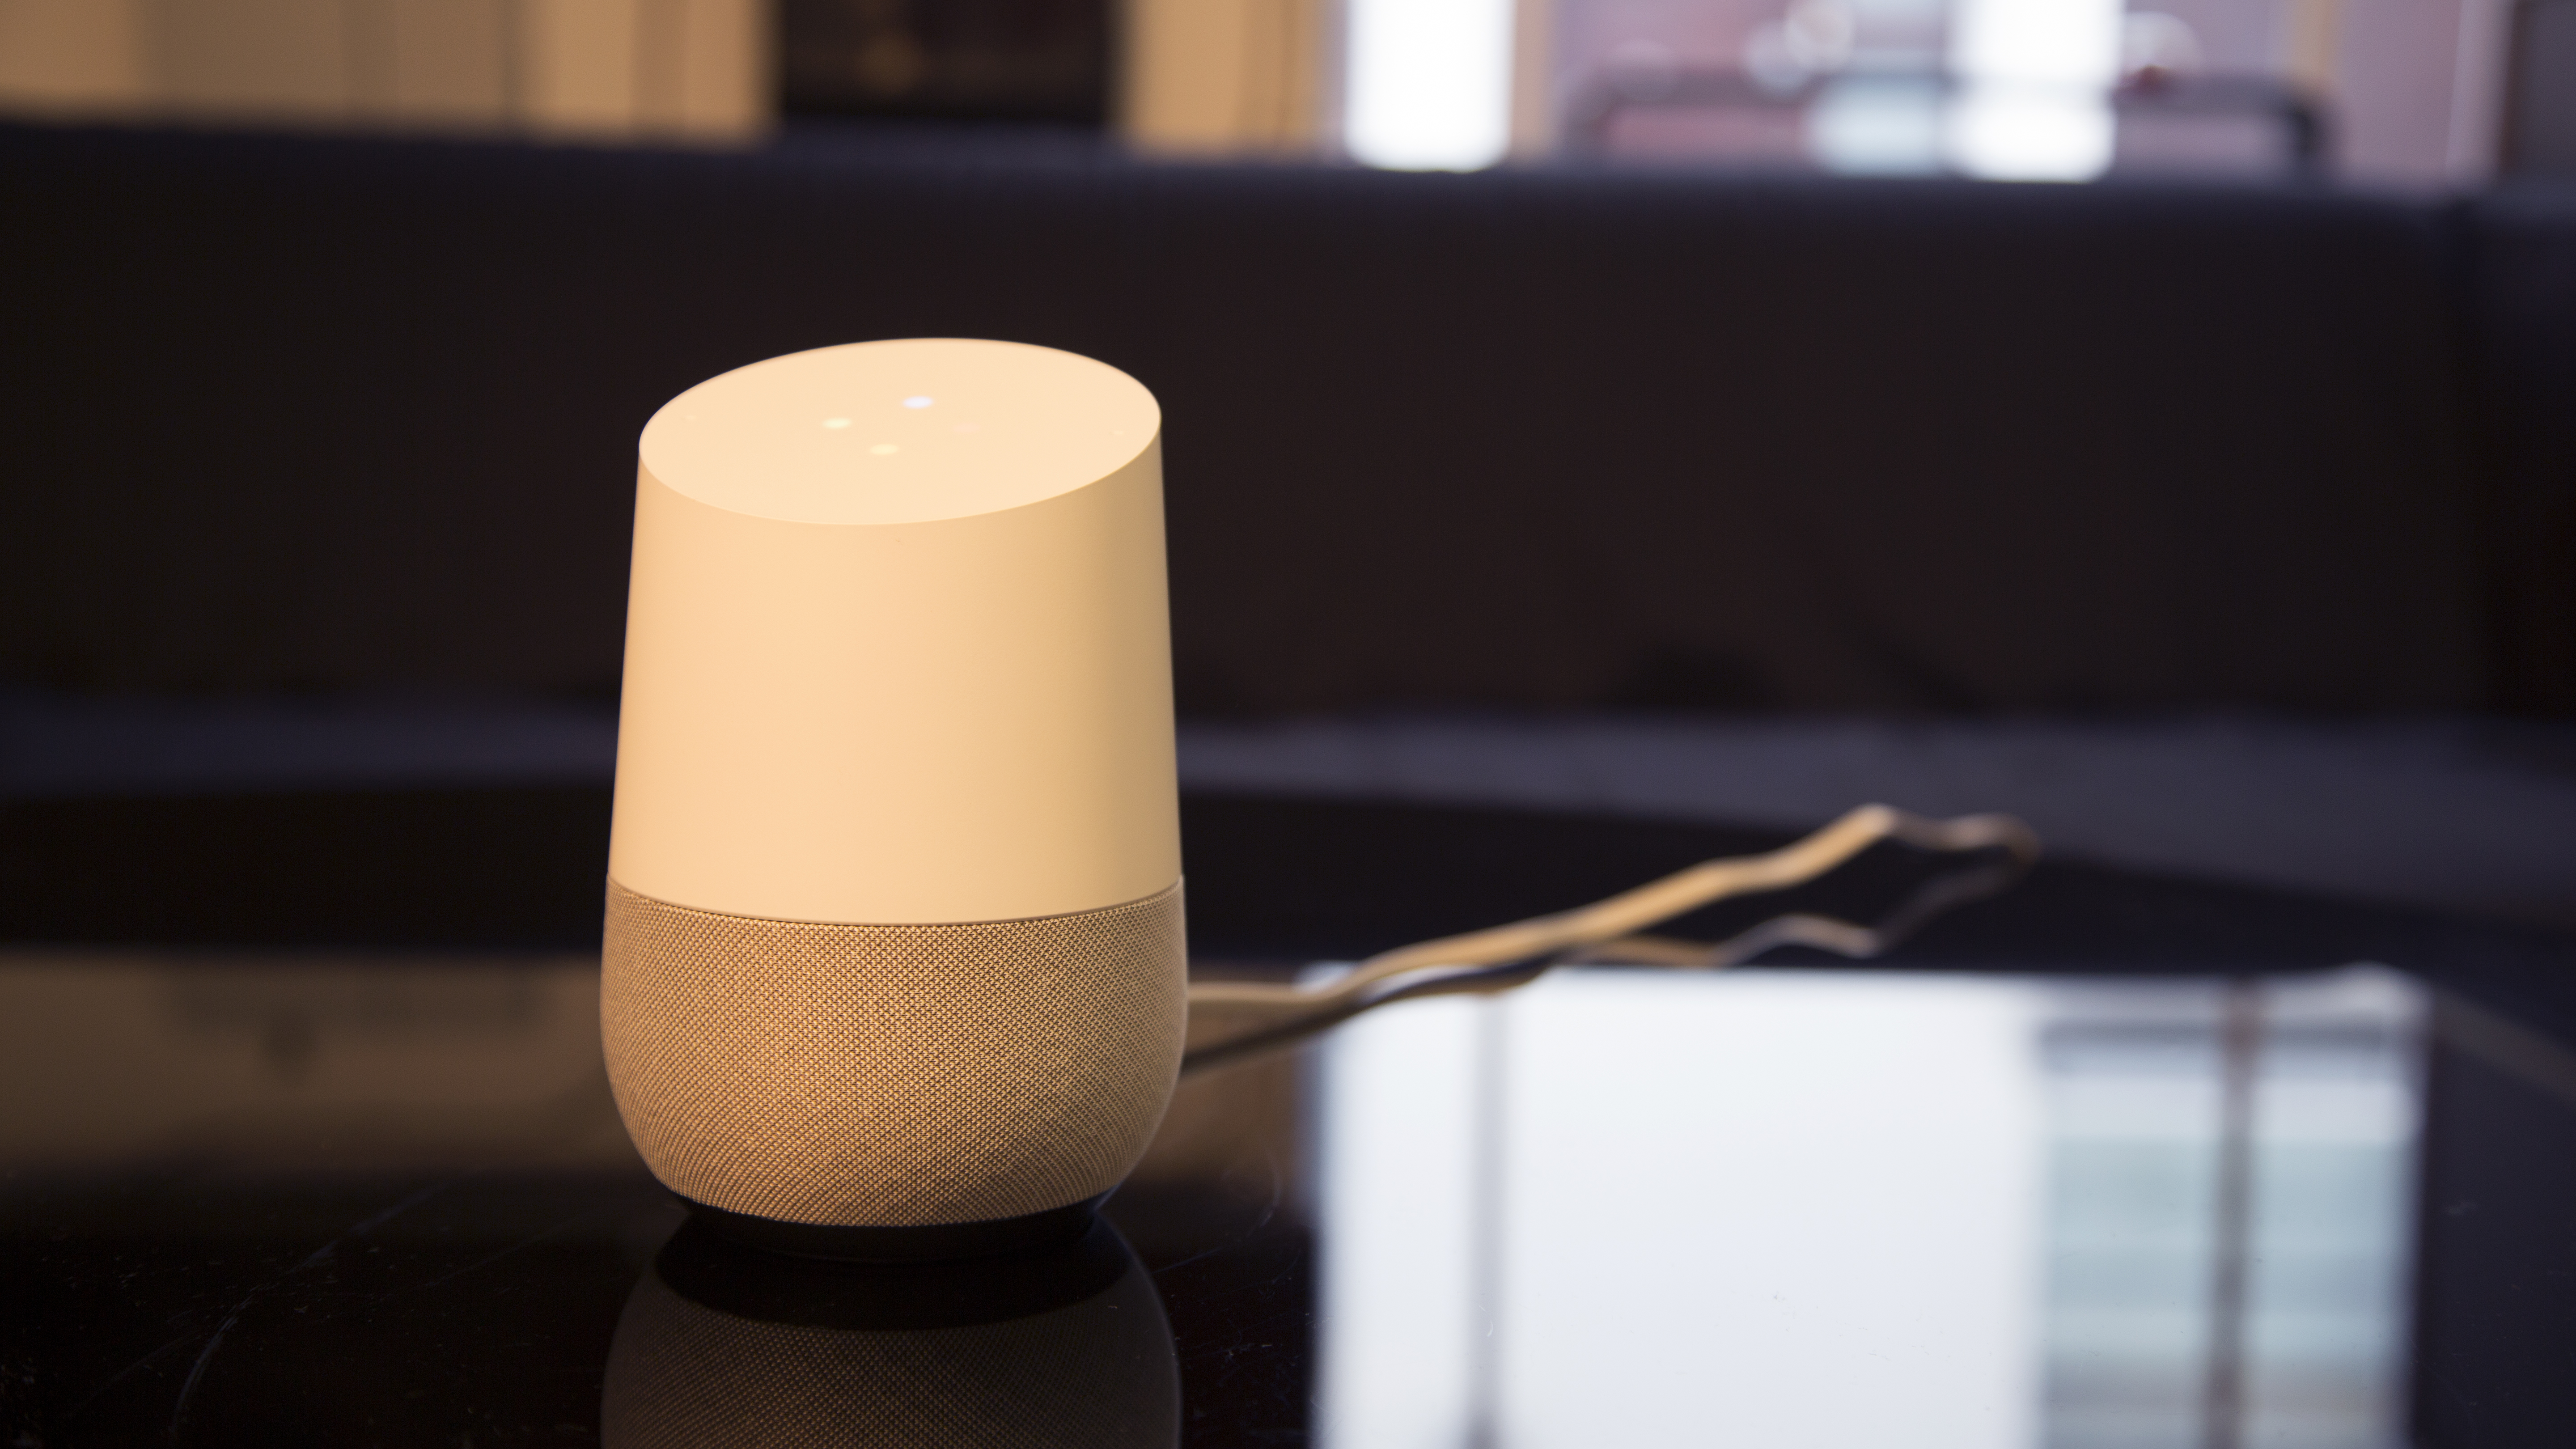 Google Home Review Techradar Harman Kardon Go Play Plus Pay Original